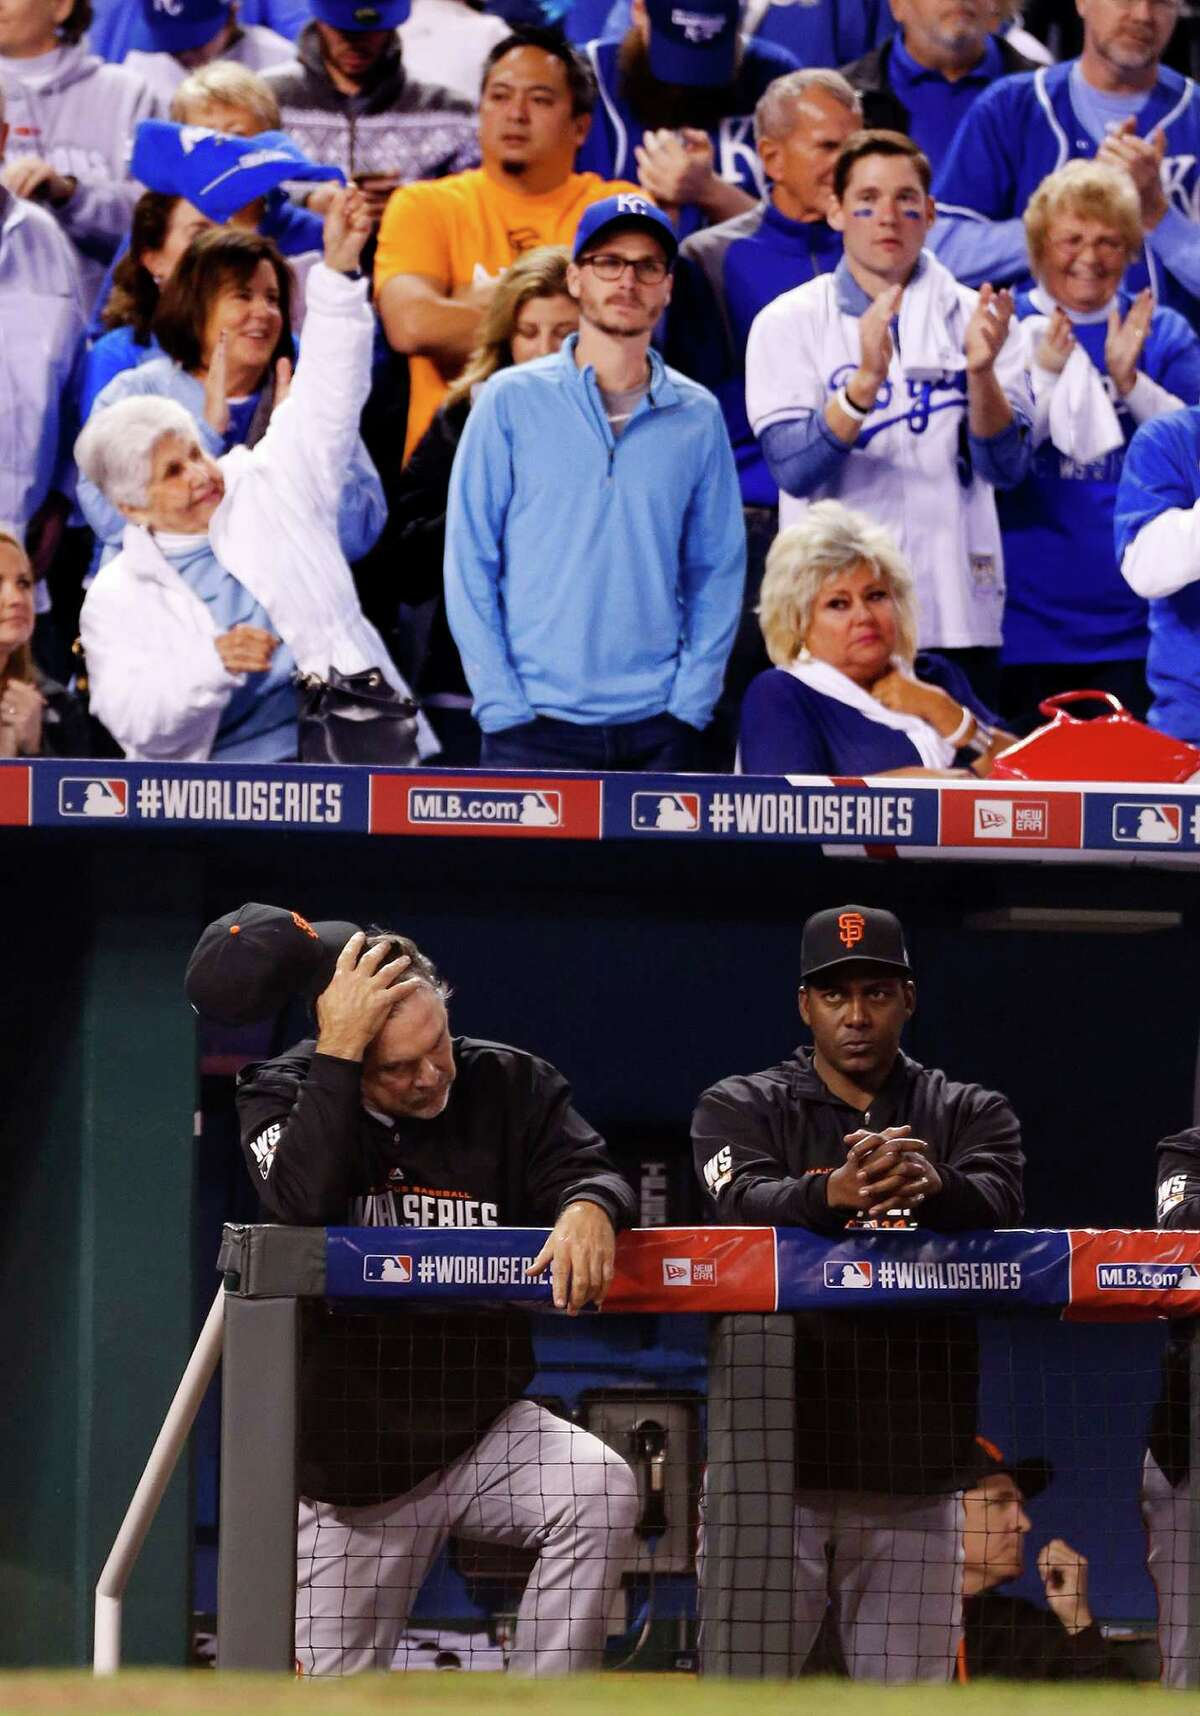 Royals fans celebrate in the beginning of the ninth inning during Game 2 of the World Series at Kauffman Stadium on Wednesday, Oct. 22, 2014 in Kansas City, Mo.